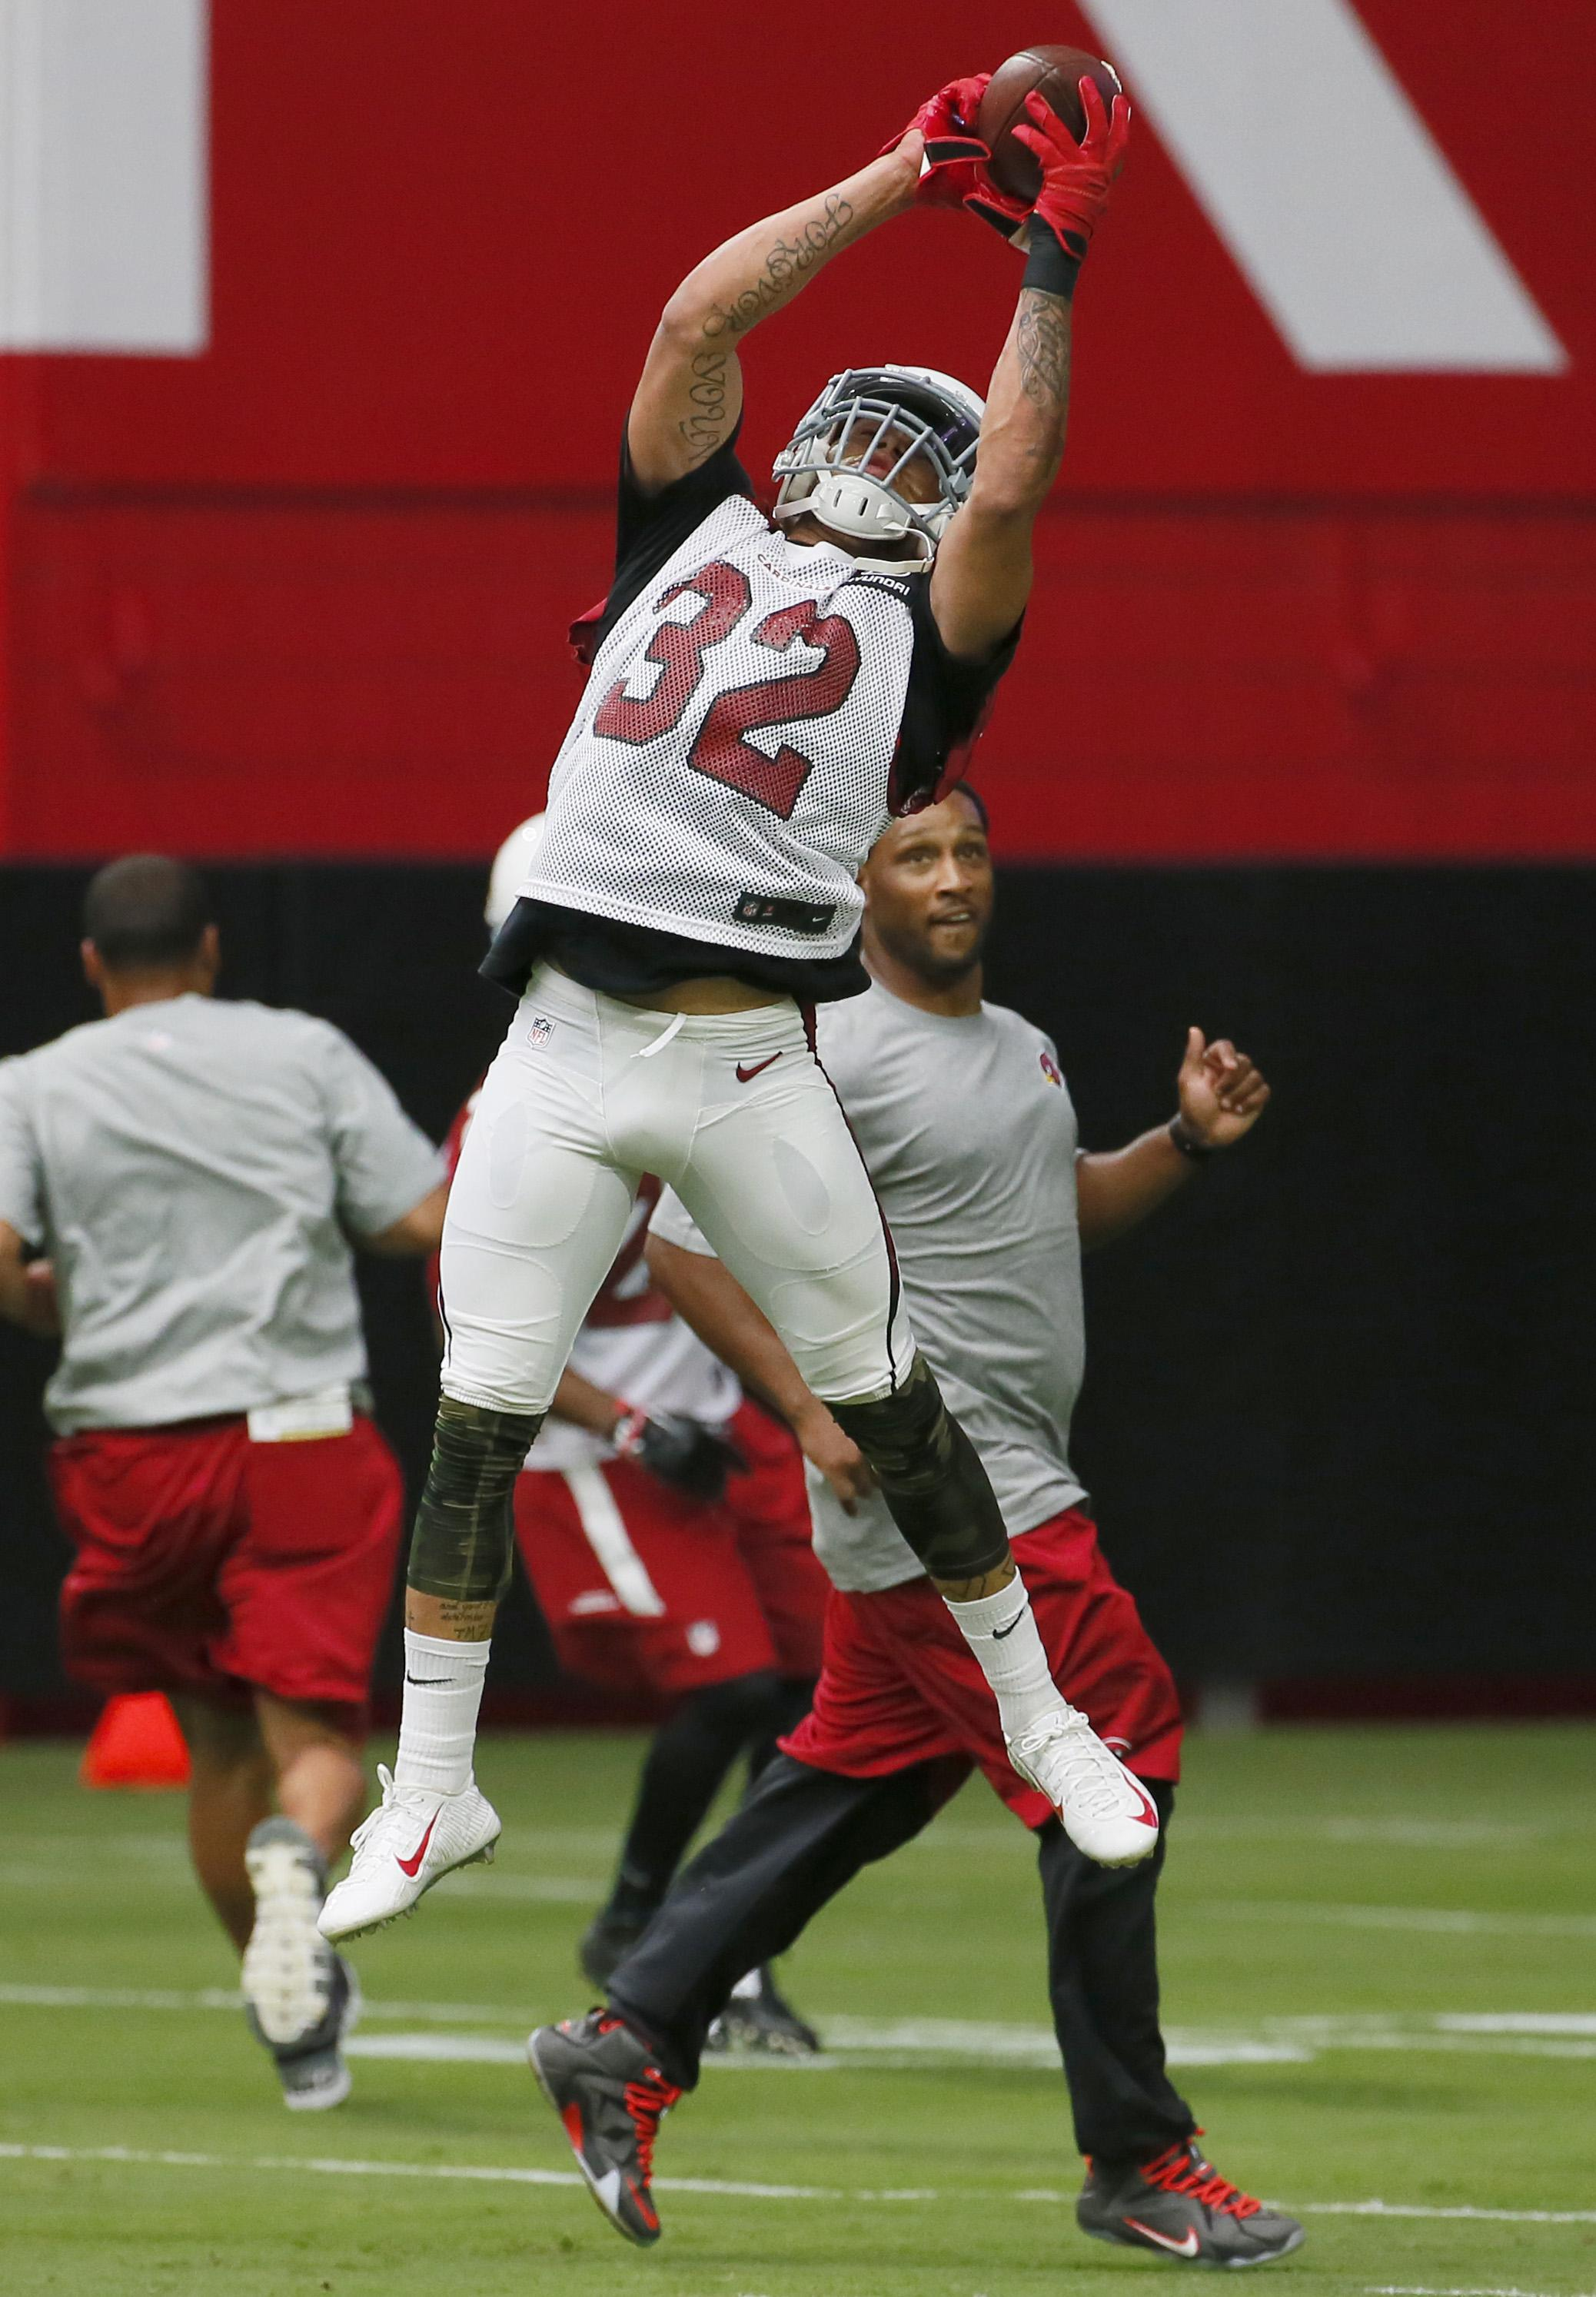 Tyrann Mathieu s journey enters 3rd NFL season Washington Times